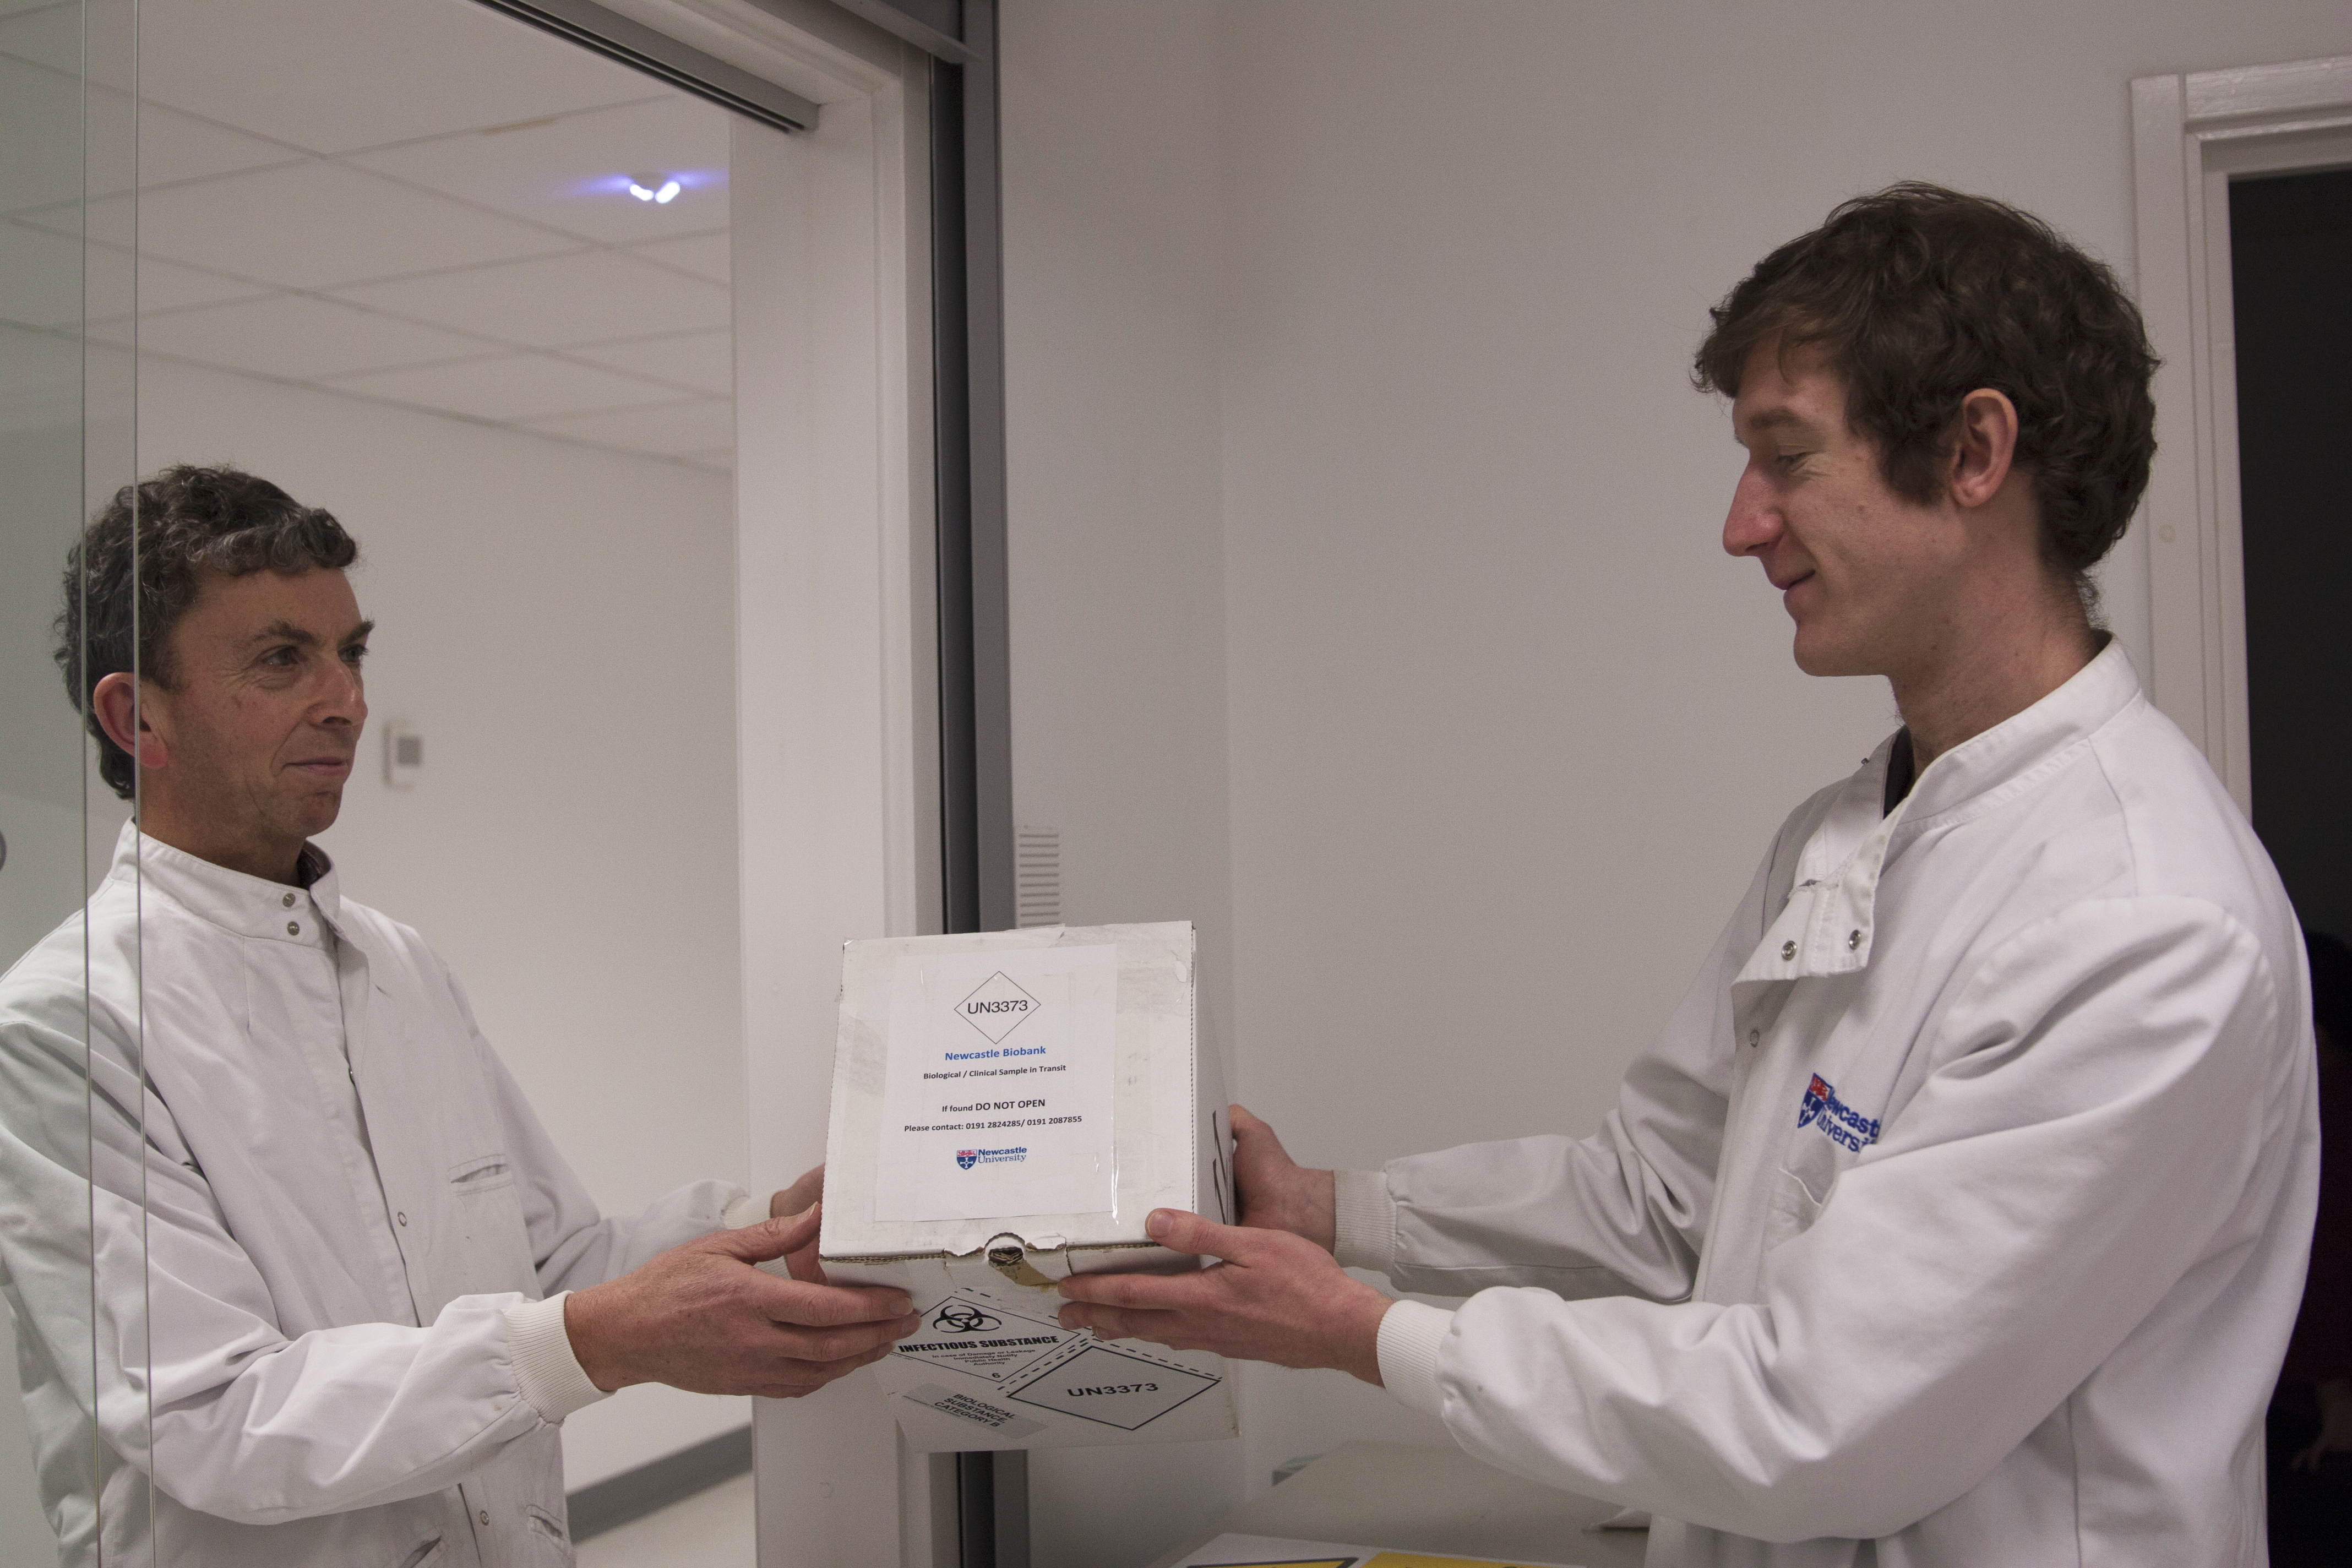 Samples being handed over to the Biobank